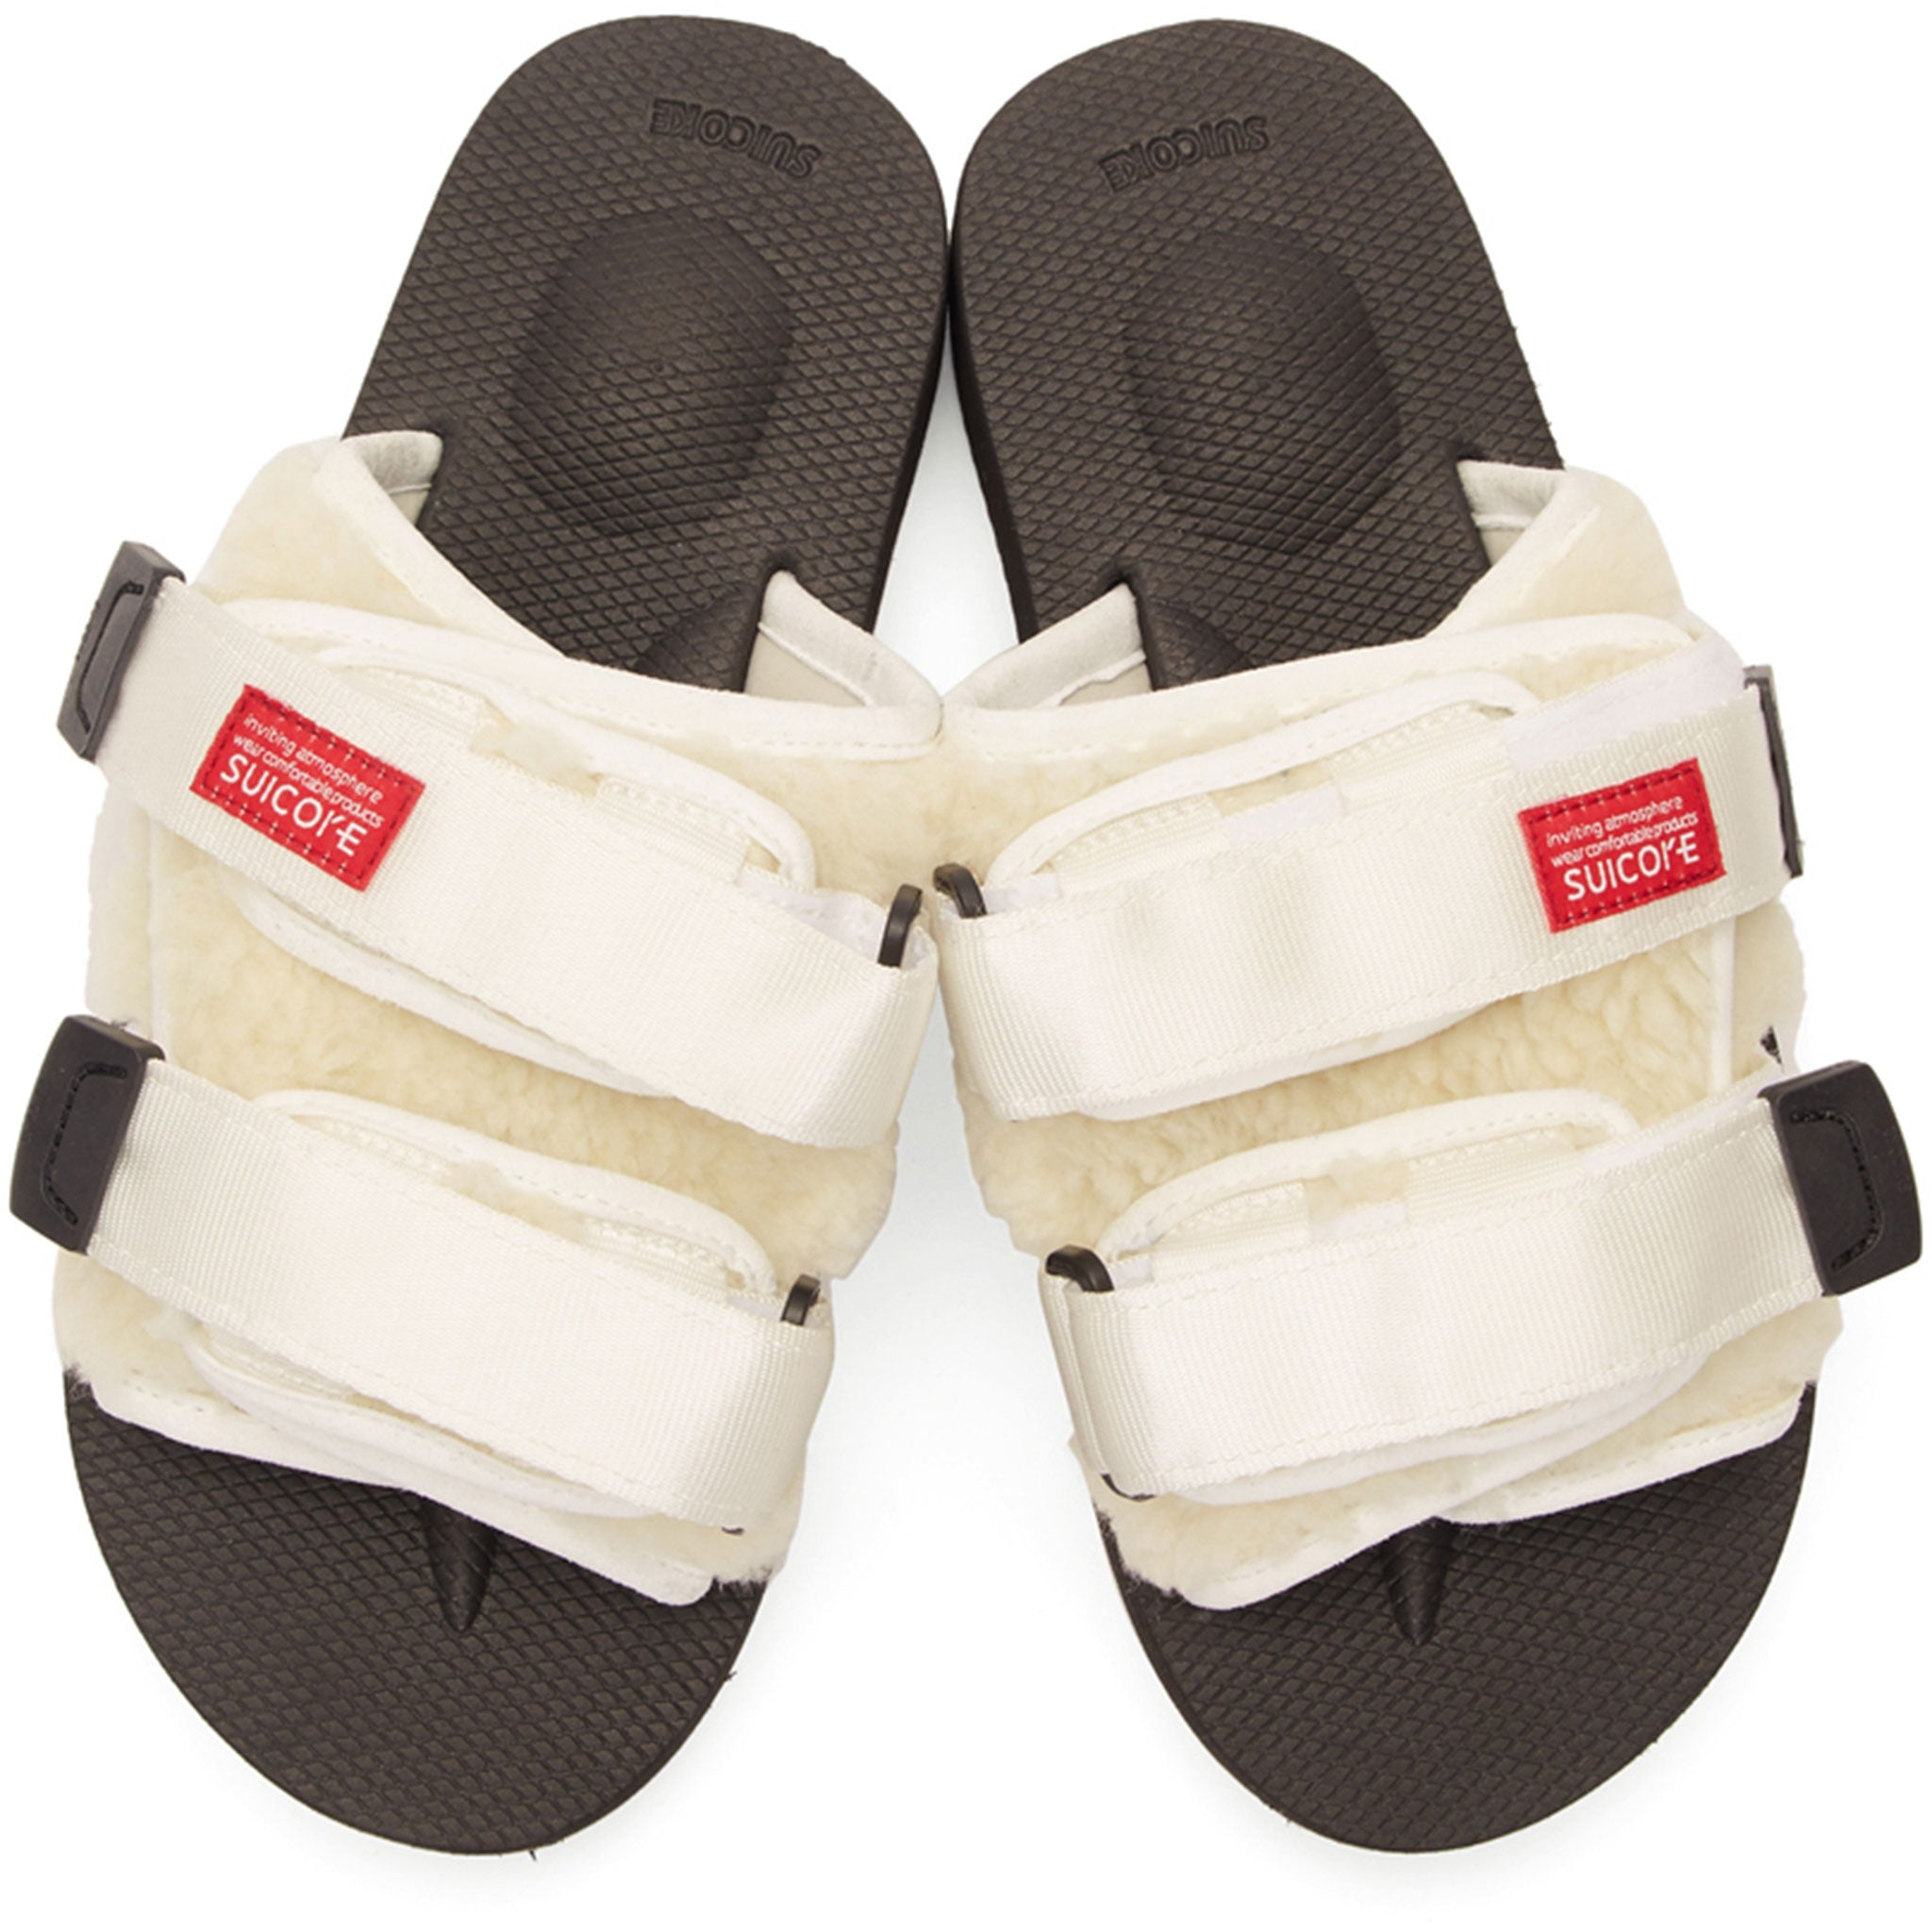 7c28b79de2c5 1032 SPACE-John Elliott-Ivory Polor Fleece John Elliott X Suicoke ...